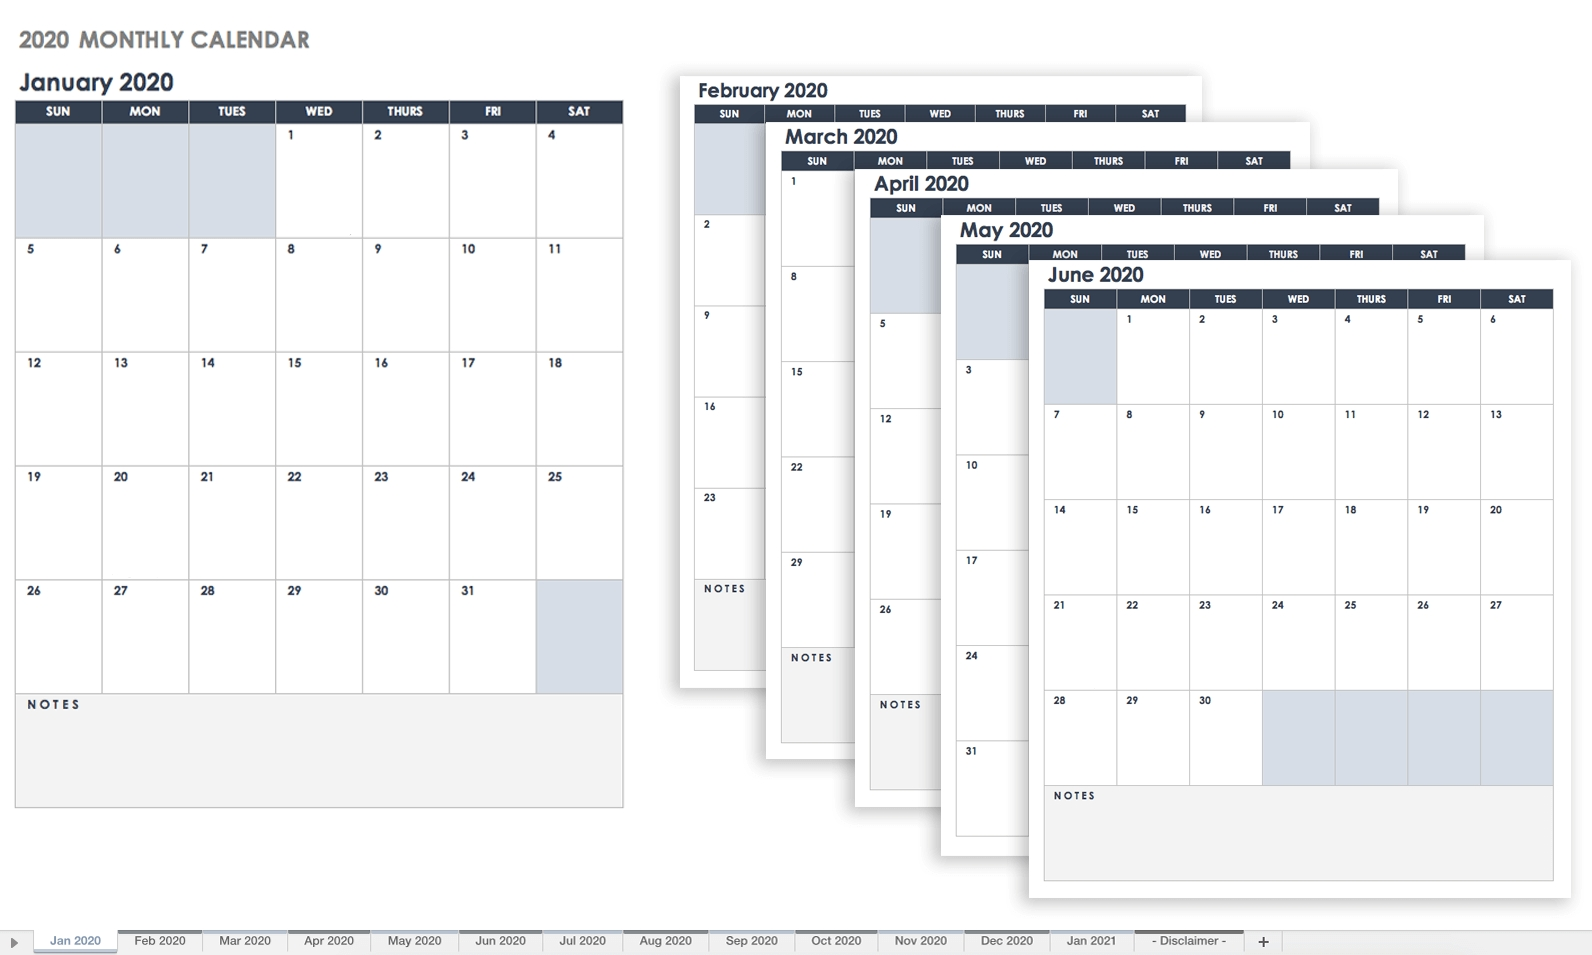 Free Google Calendar Templates | Smartsheet-How To Design Writeable Monthly Bill-Payments Calendar Template 2020